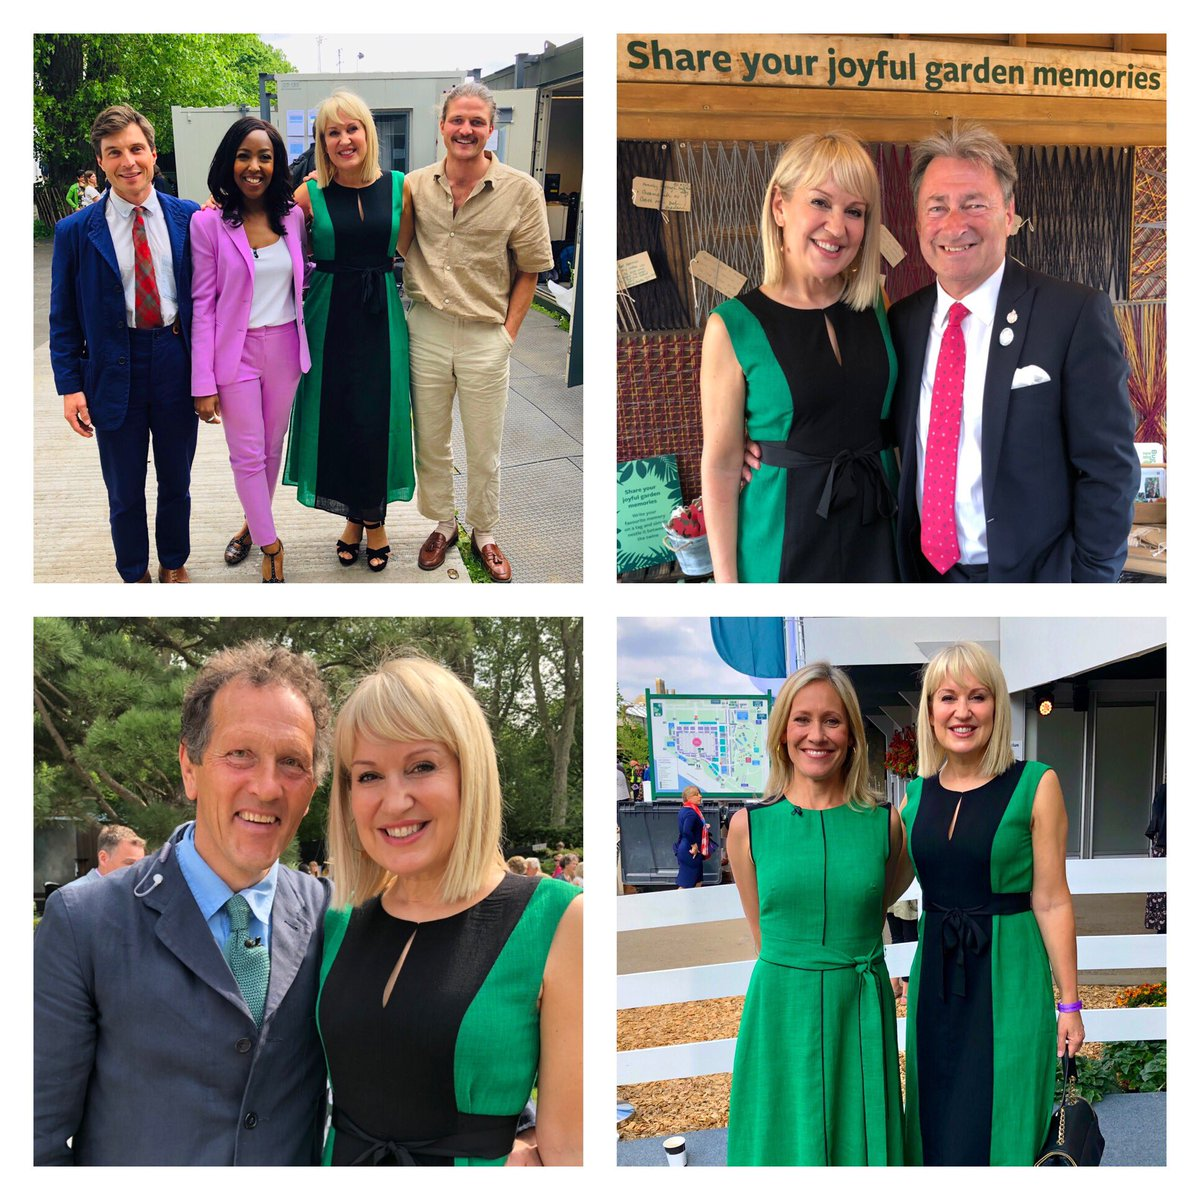 A wonderful morning! 1st proper outing since the op & what a tonic. Thks @The_RHS @BBC. Caught up with friendly faces @angellicabell @therichbrothers #alantitchmarsh @sophieraworth (we got the green memo) & @TheMontyDon #RHSChelseaFlowerShow2019 I'll be watching @BBCOne @BBCTwo